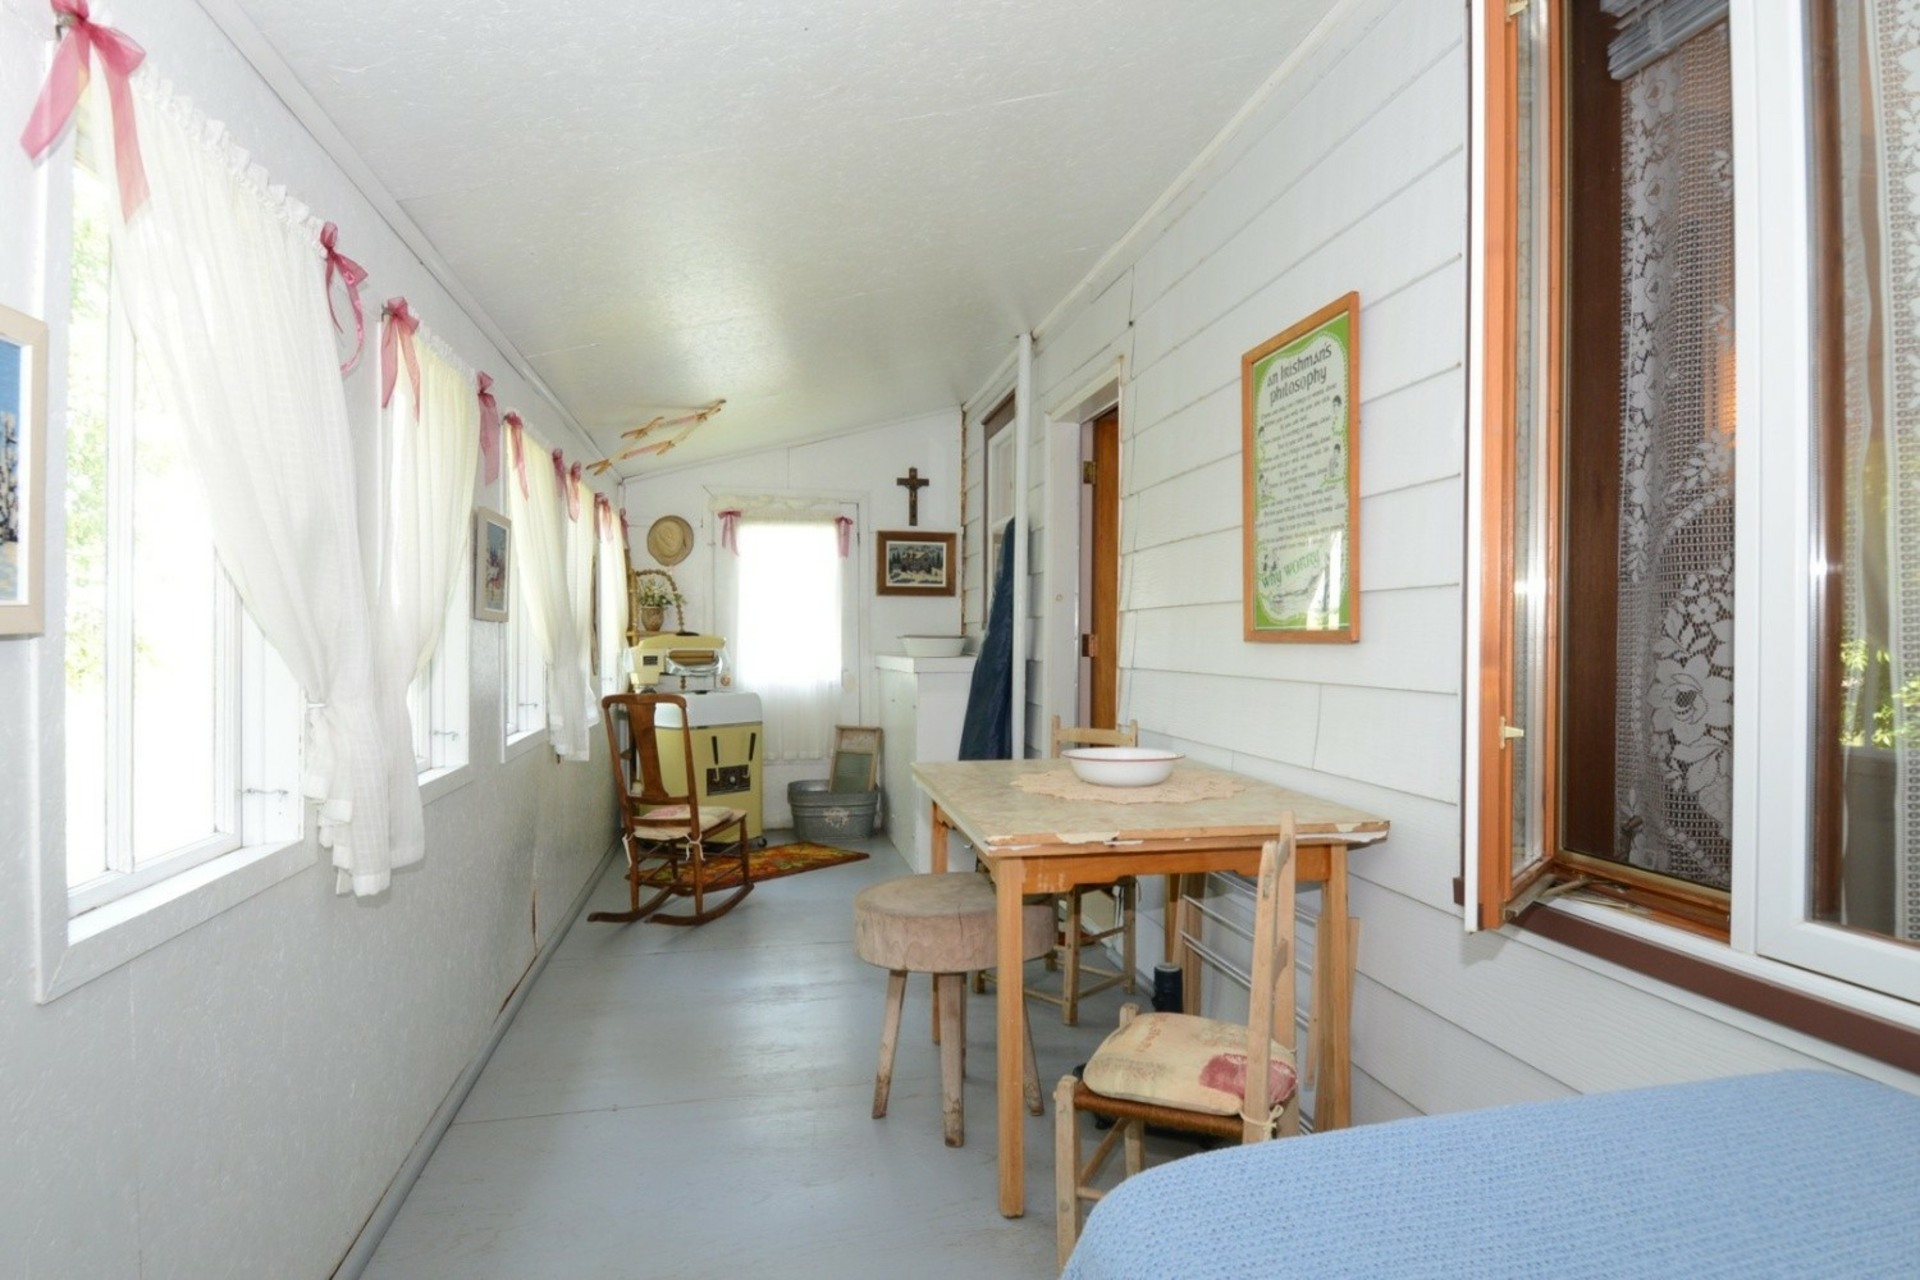 image 12 - Farmhouse For sale Rigaud - 8 rooms